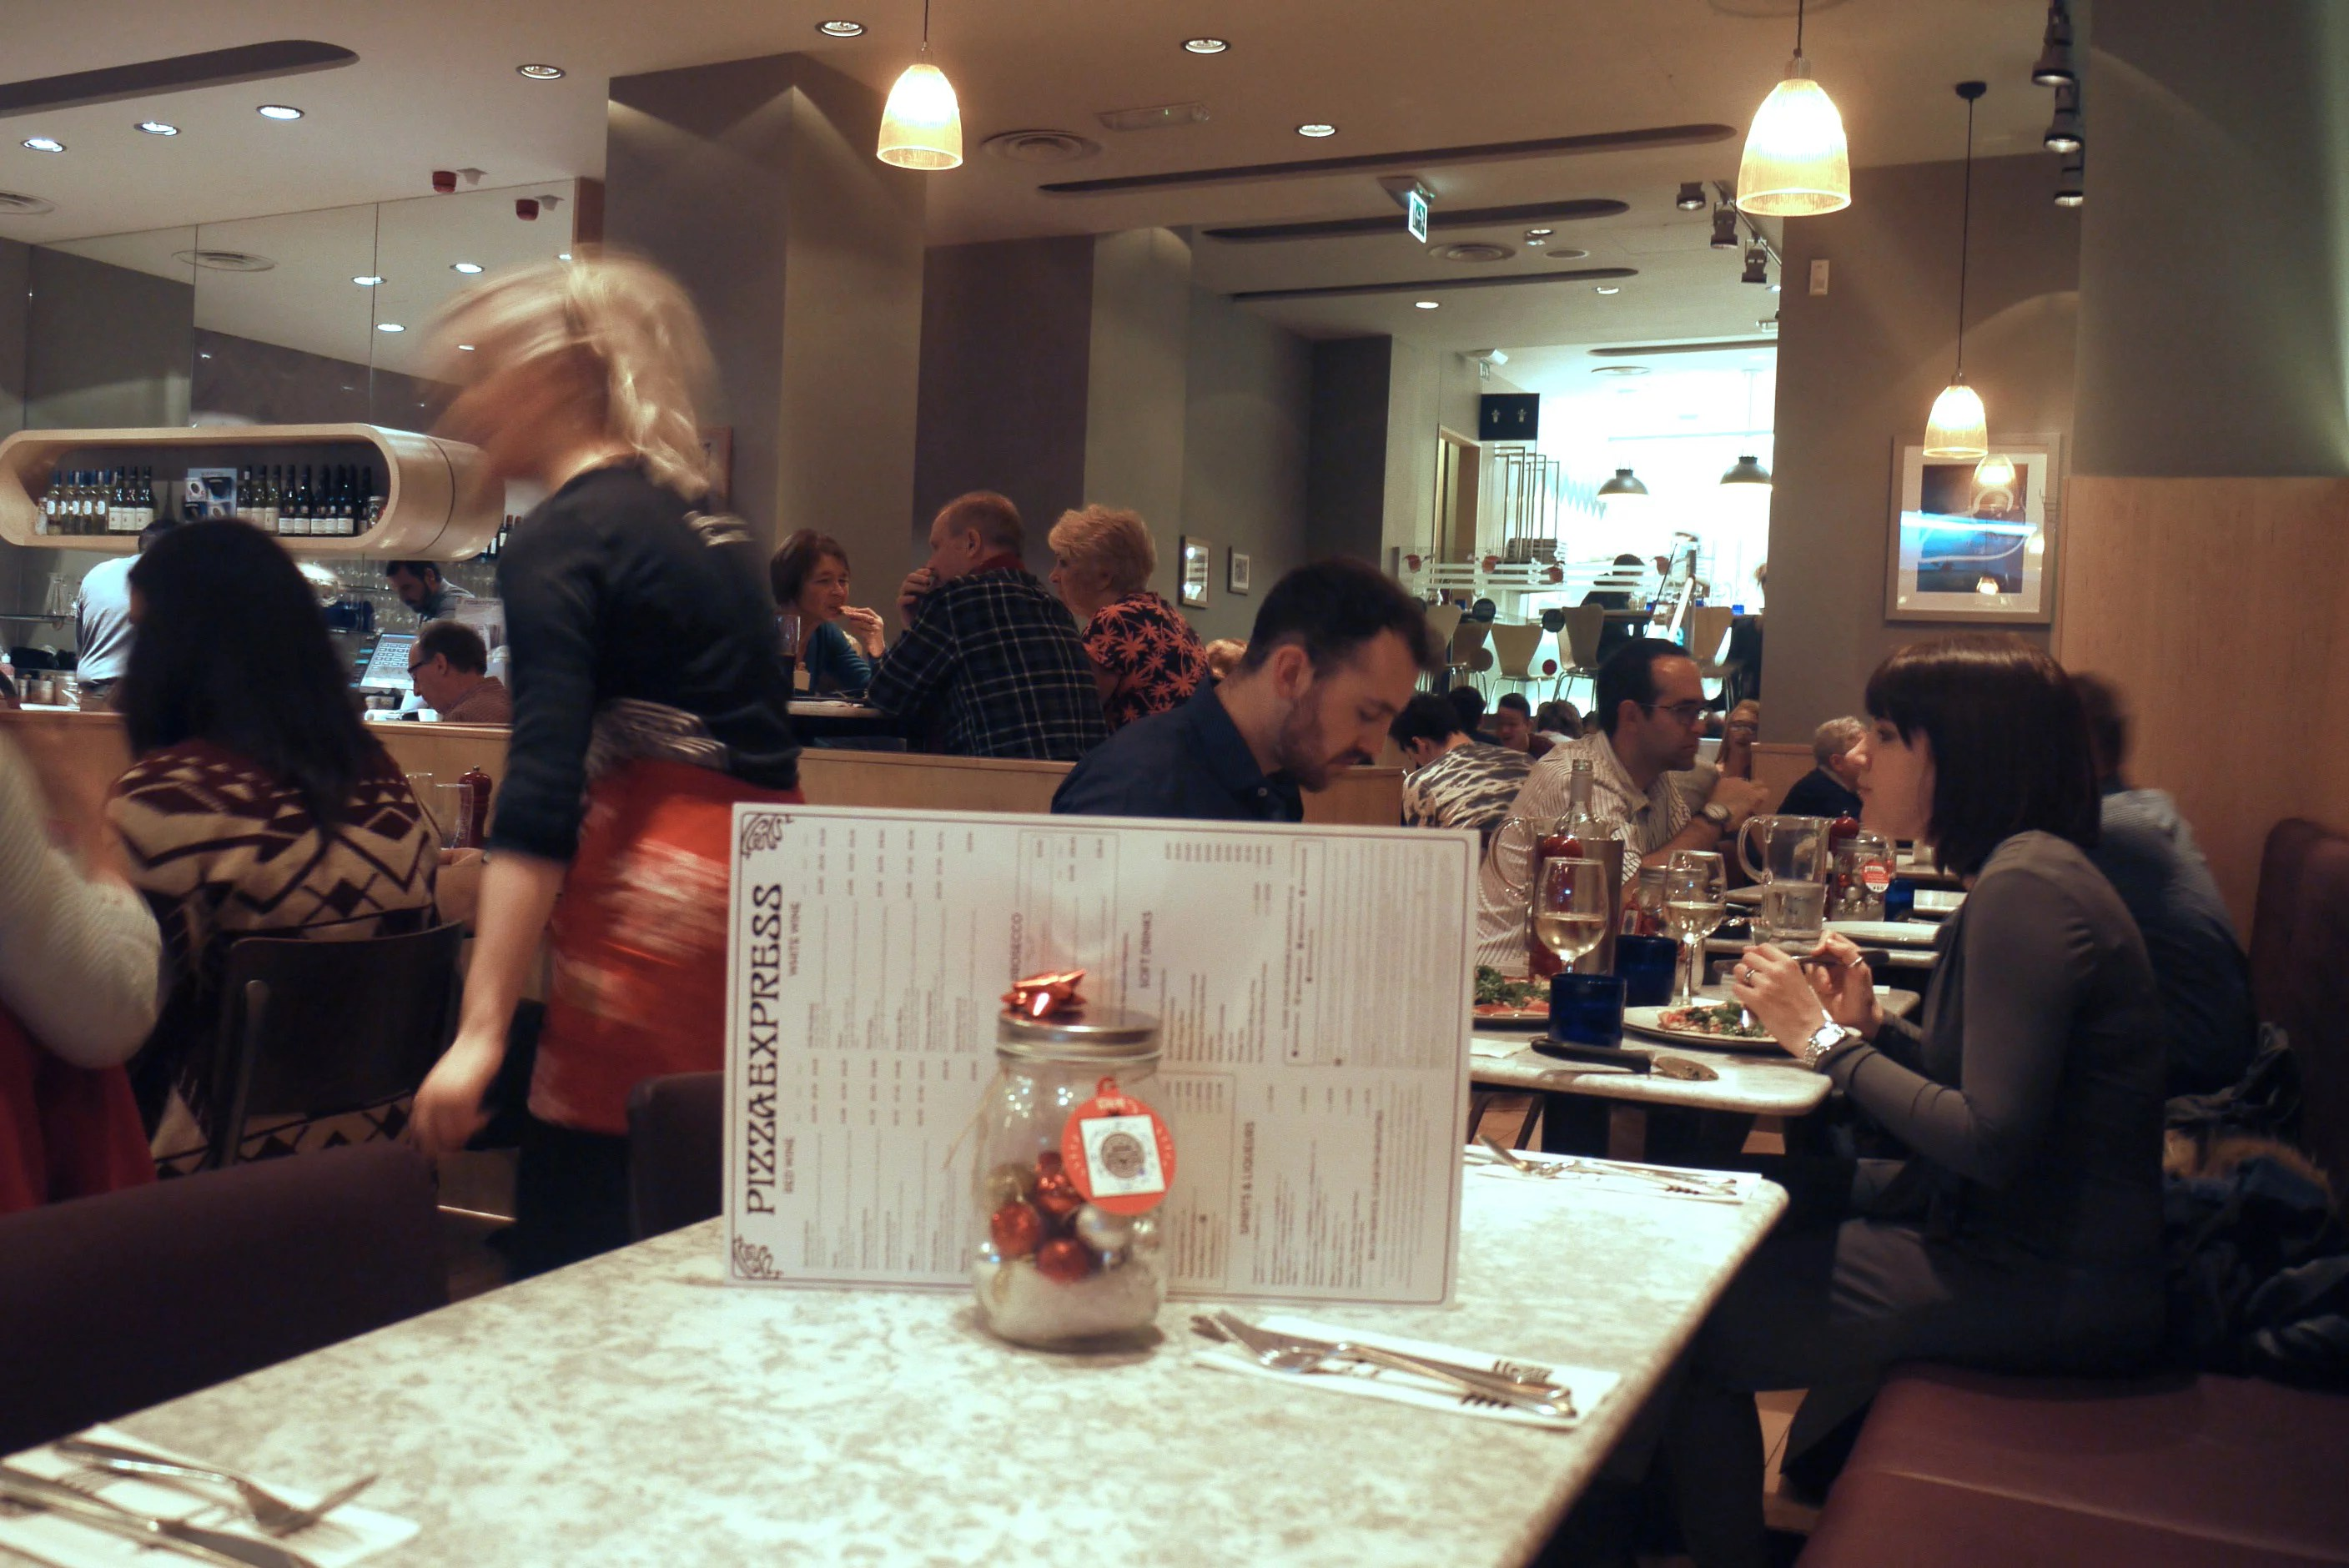 Review Of The Pizza Express On Oxford Street Manchester